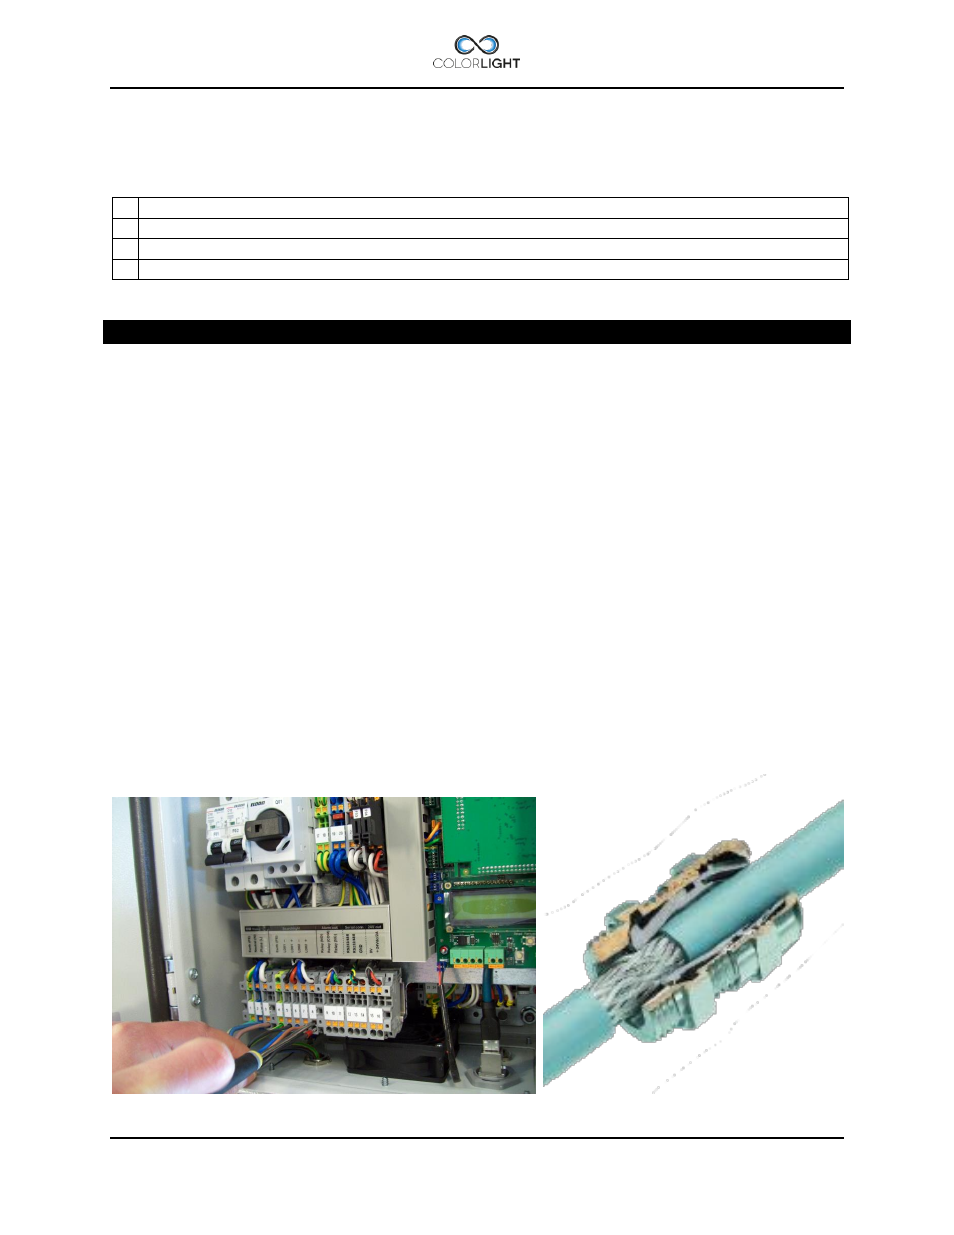 4 Electrical Box Installation Wiring Diagrams Are Attached Inside The Cover 84 Colorlight Cl25 Manual User Page 24 52